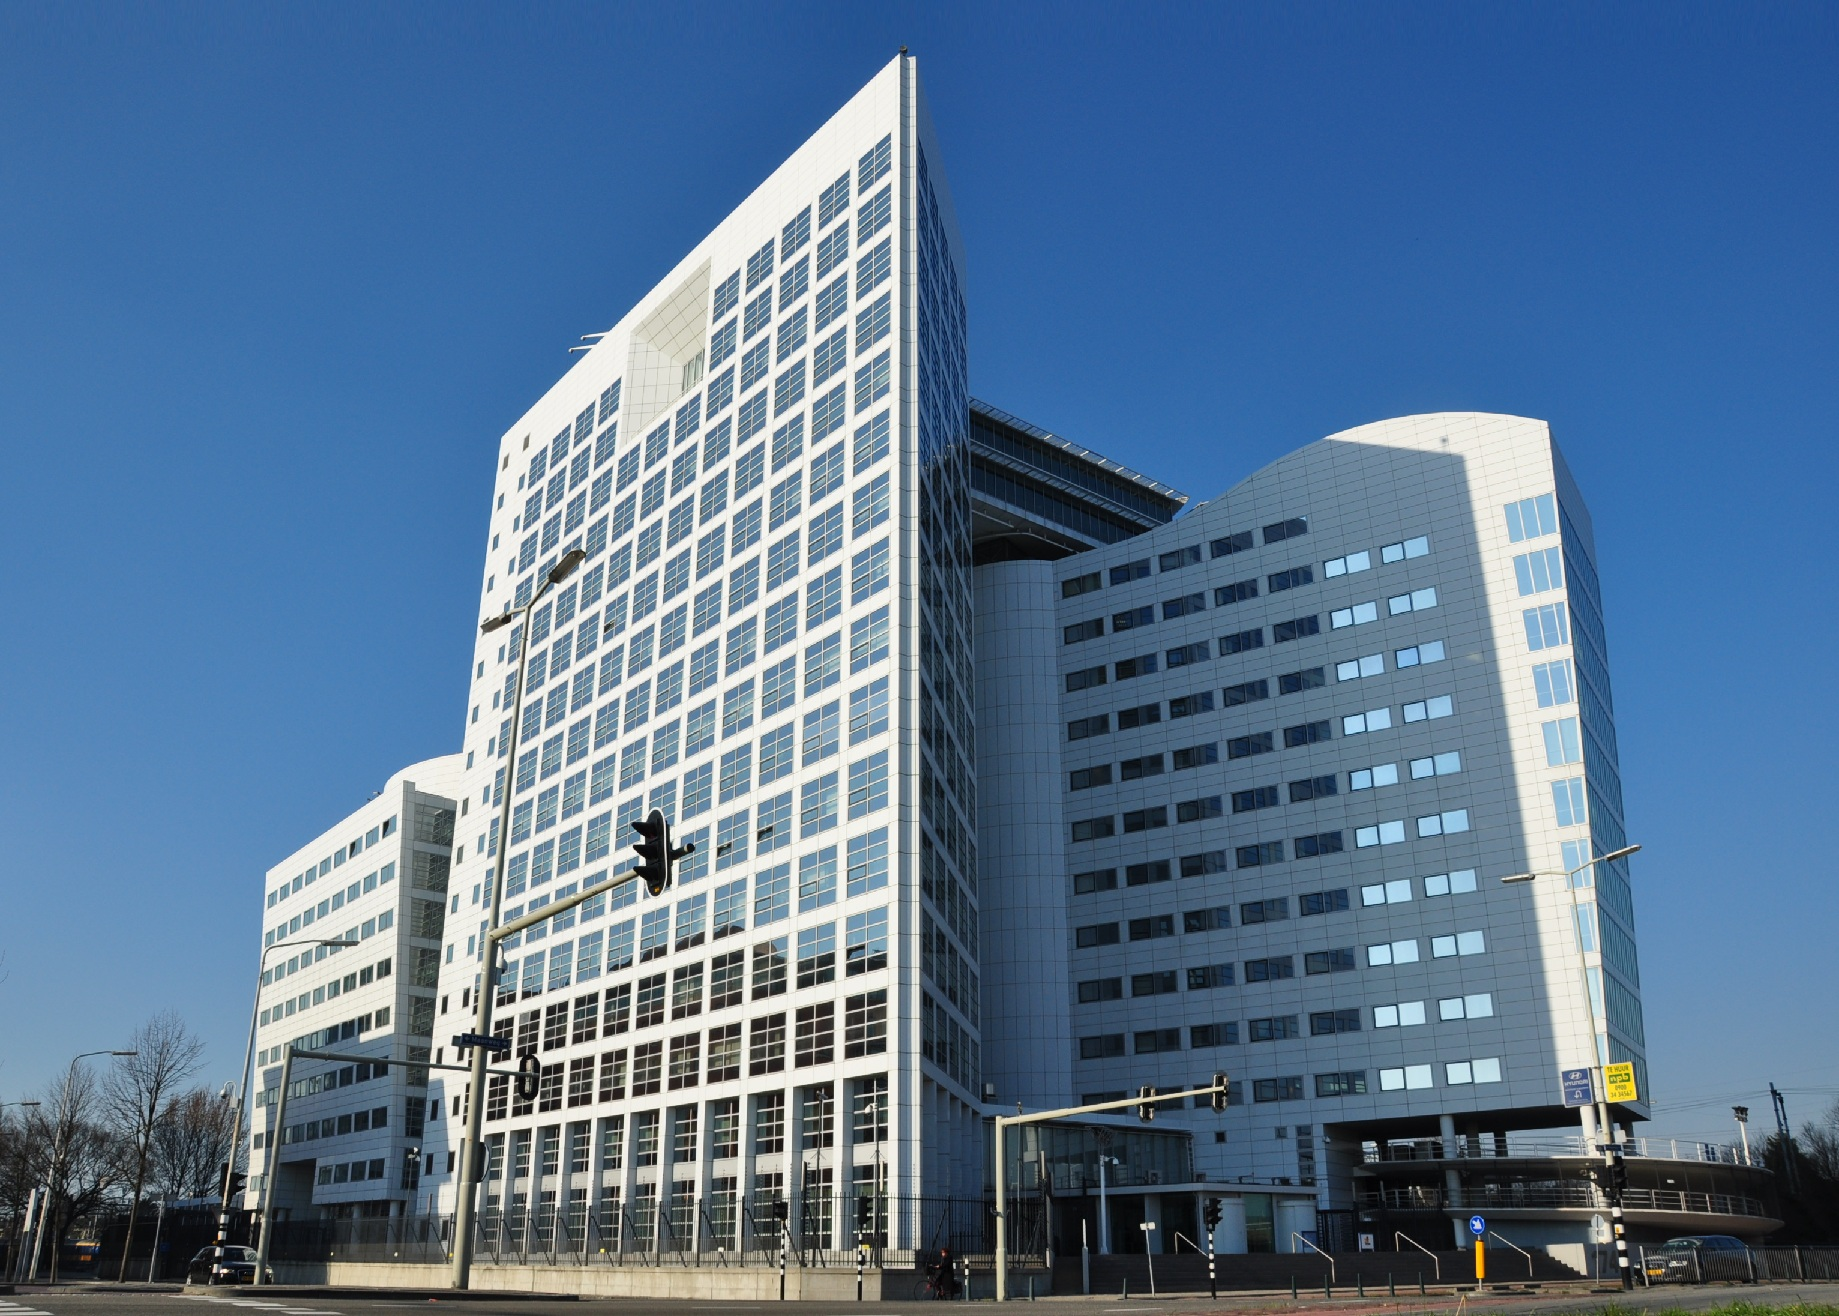 http://upload.wikimedia.org/wikipedia/commons/f/fd/Netherlands,_The_Hague,_International_Criminal_Court.JPG